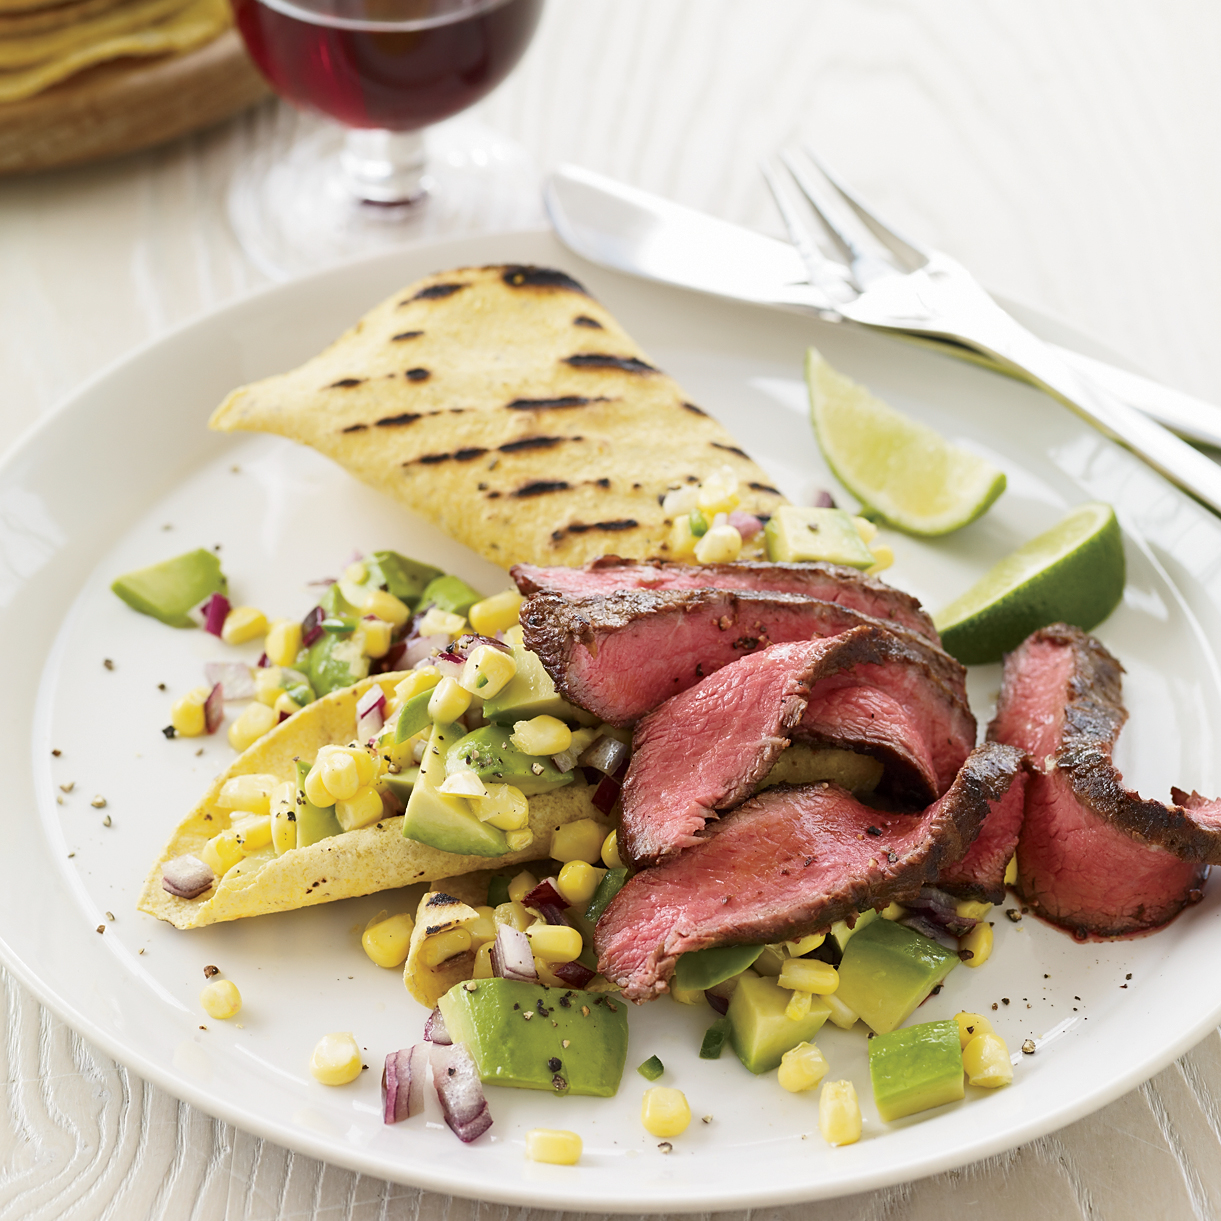 Day 9: Chipotle-Marinated Flatiron Steak with Avocado-Corn Relish